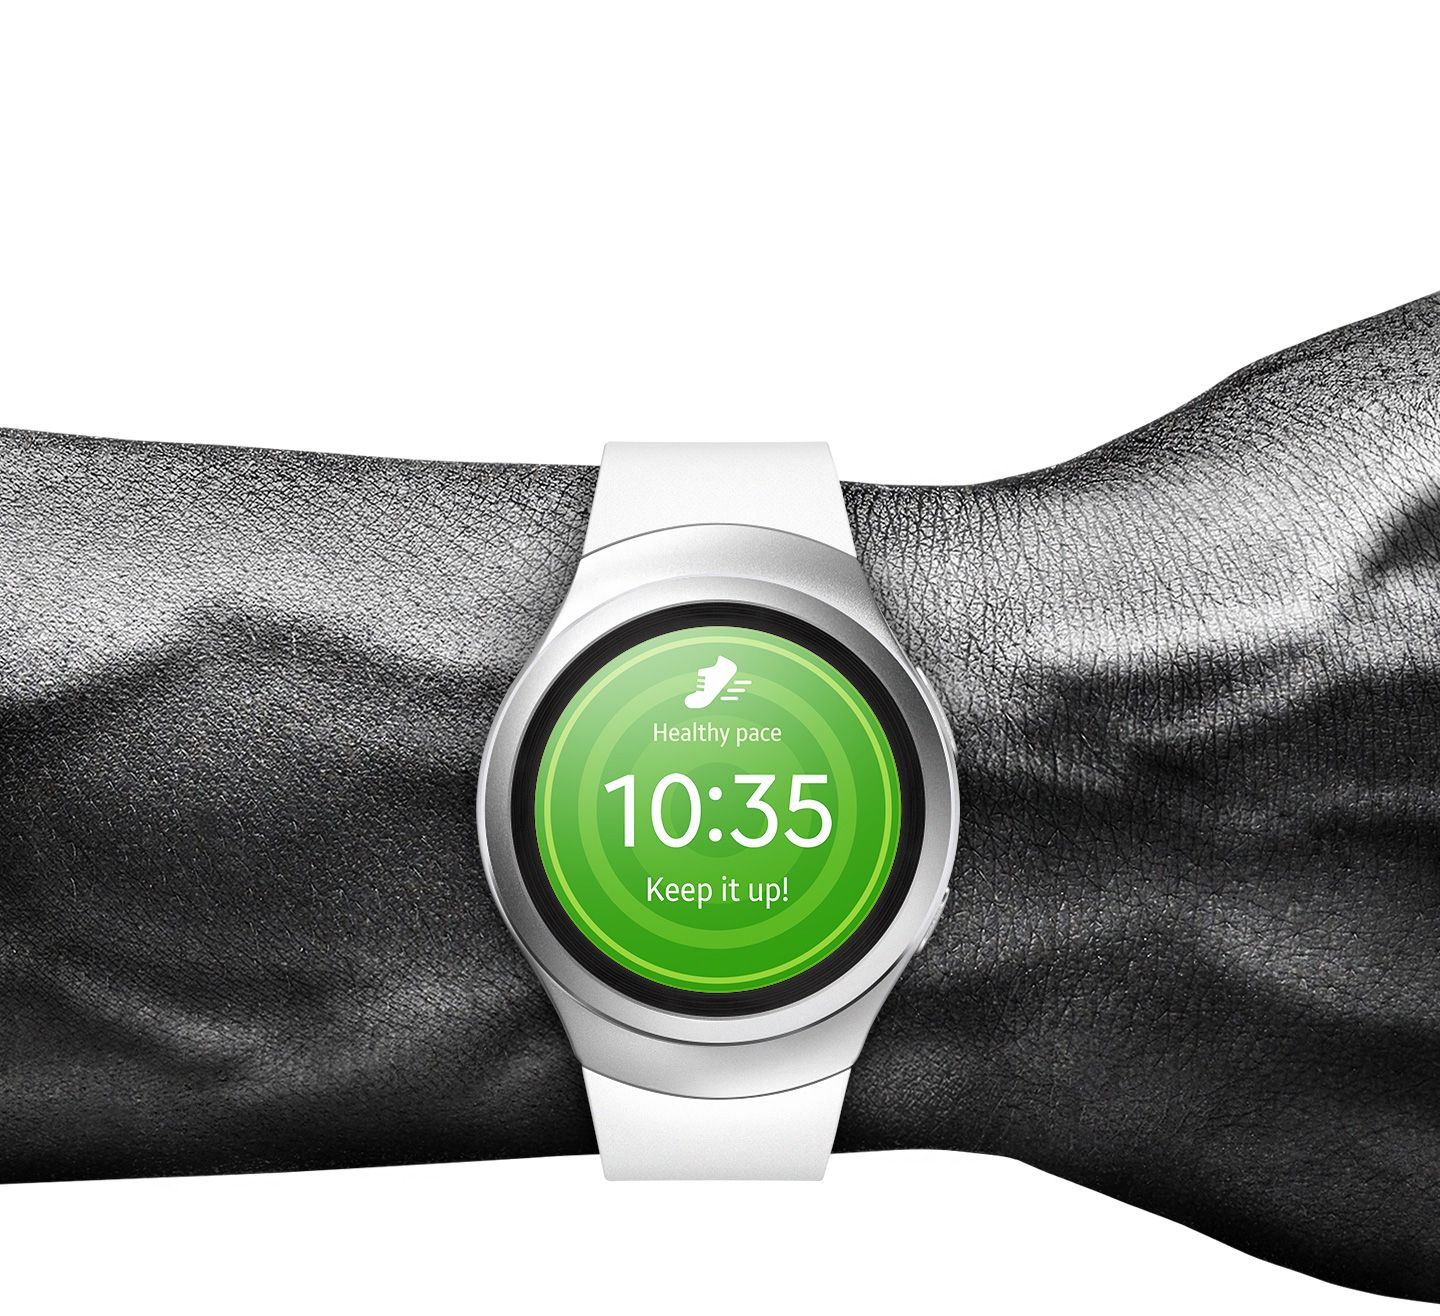 Gartner: Wearable devices sales to grow by 18.4% in 2016